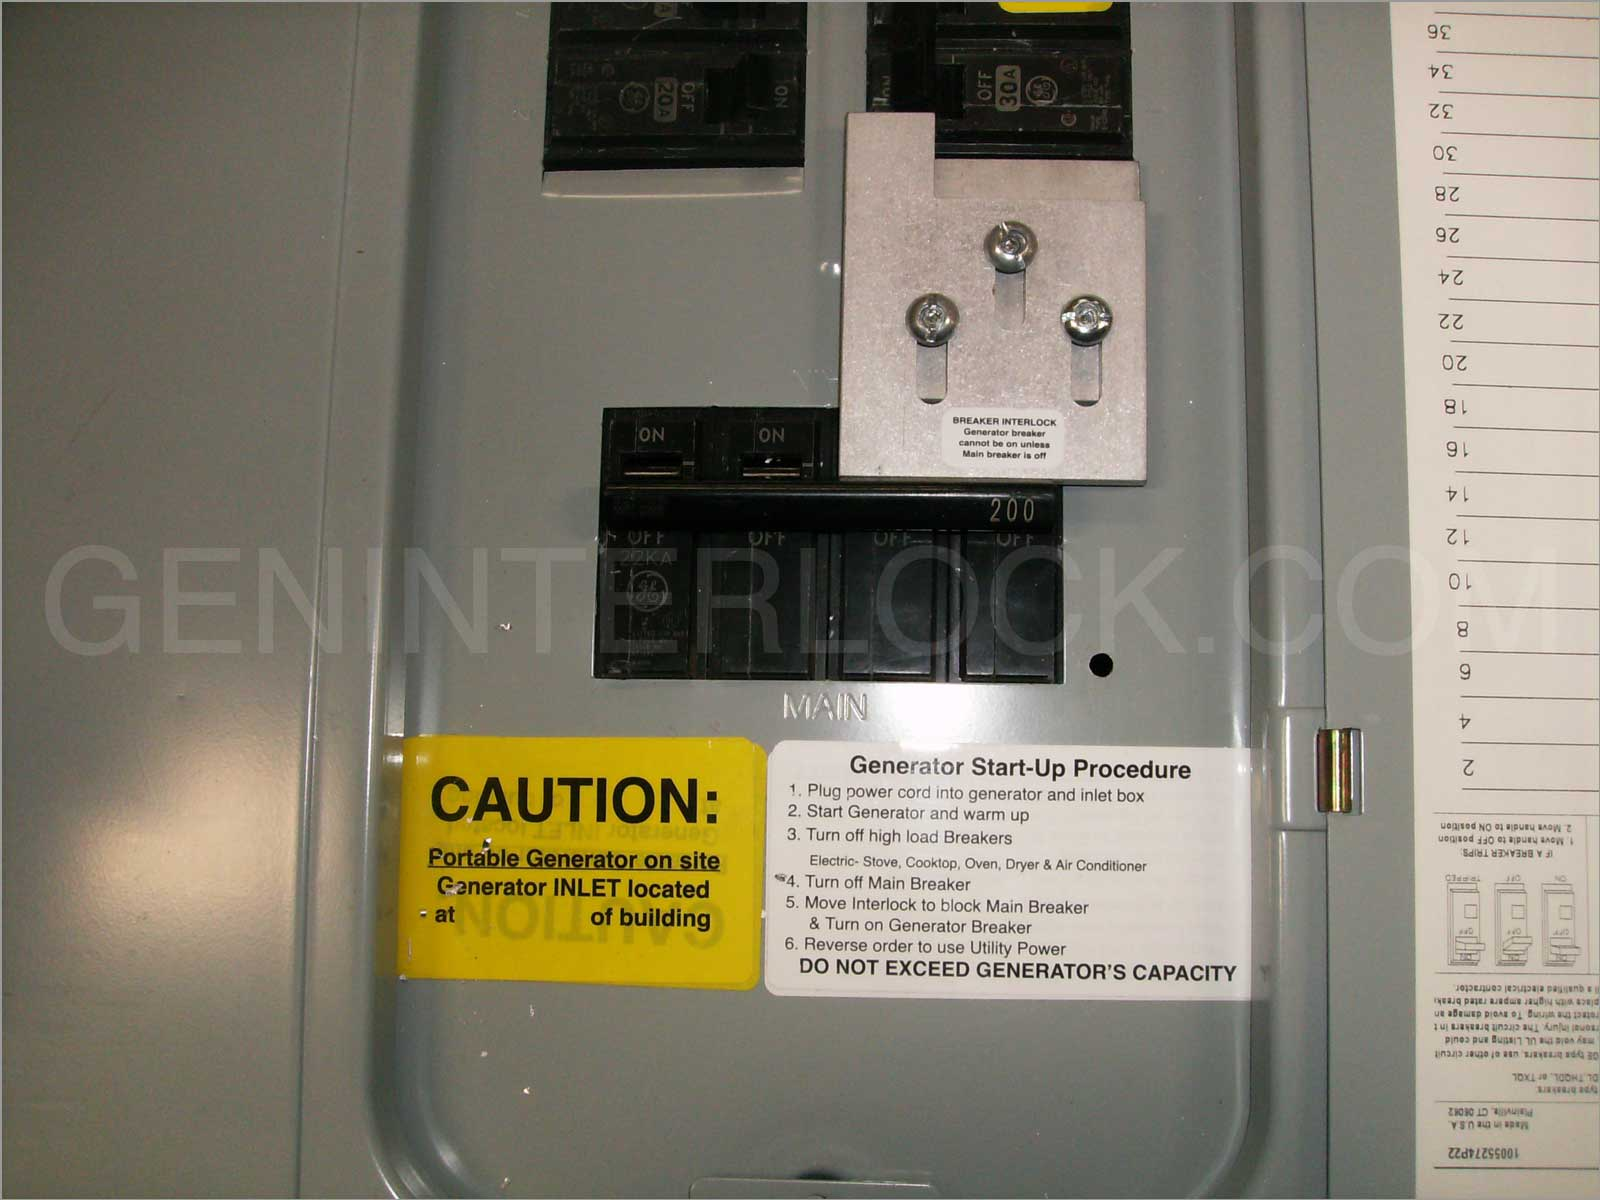 ge200b_i_lg Main Electrical Panel Box on square d circuit panel box, electrical service box, types of retrofit electrical box, main lug panel box wiring, electrical disconnect box, main power supply box, main service panel, main lug only panel, residential electrical switch box, 200 amp disconnect box, electrical fuse box, electrical distribution box, surge protection panel box, breaker box, power distribution box, outdoor panel box, sub panel box, residential panel box, home service panel box, electrical splice box,